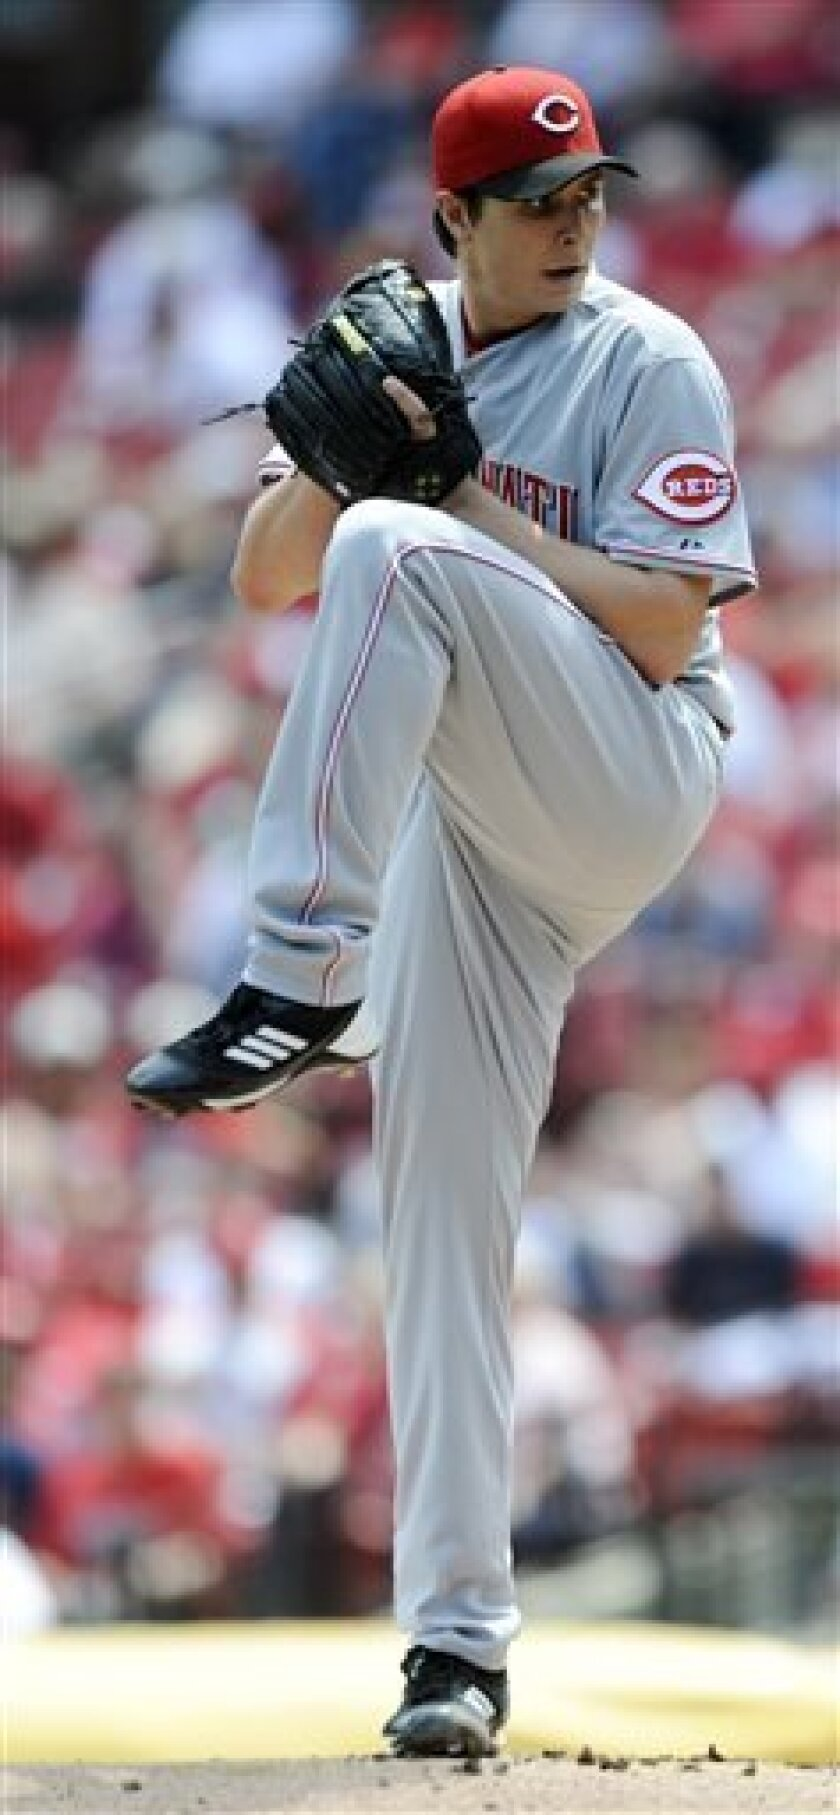 Cincinnati Reds starting pitcher Homer Bailey winds up to throw against the St. Louis Cardinals in the first inning in a baseball game Wednesday, May 1, 2013, at Busch Stadium in St. Louis. (AP Photo/Bill Boyce)